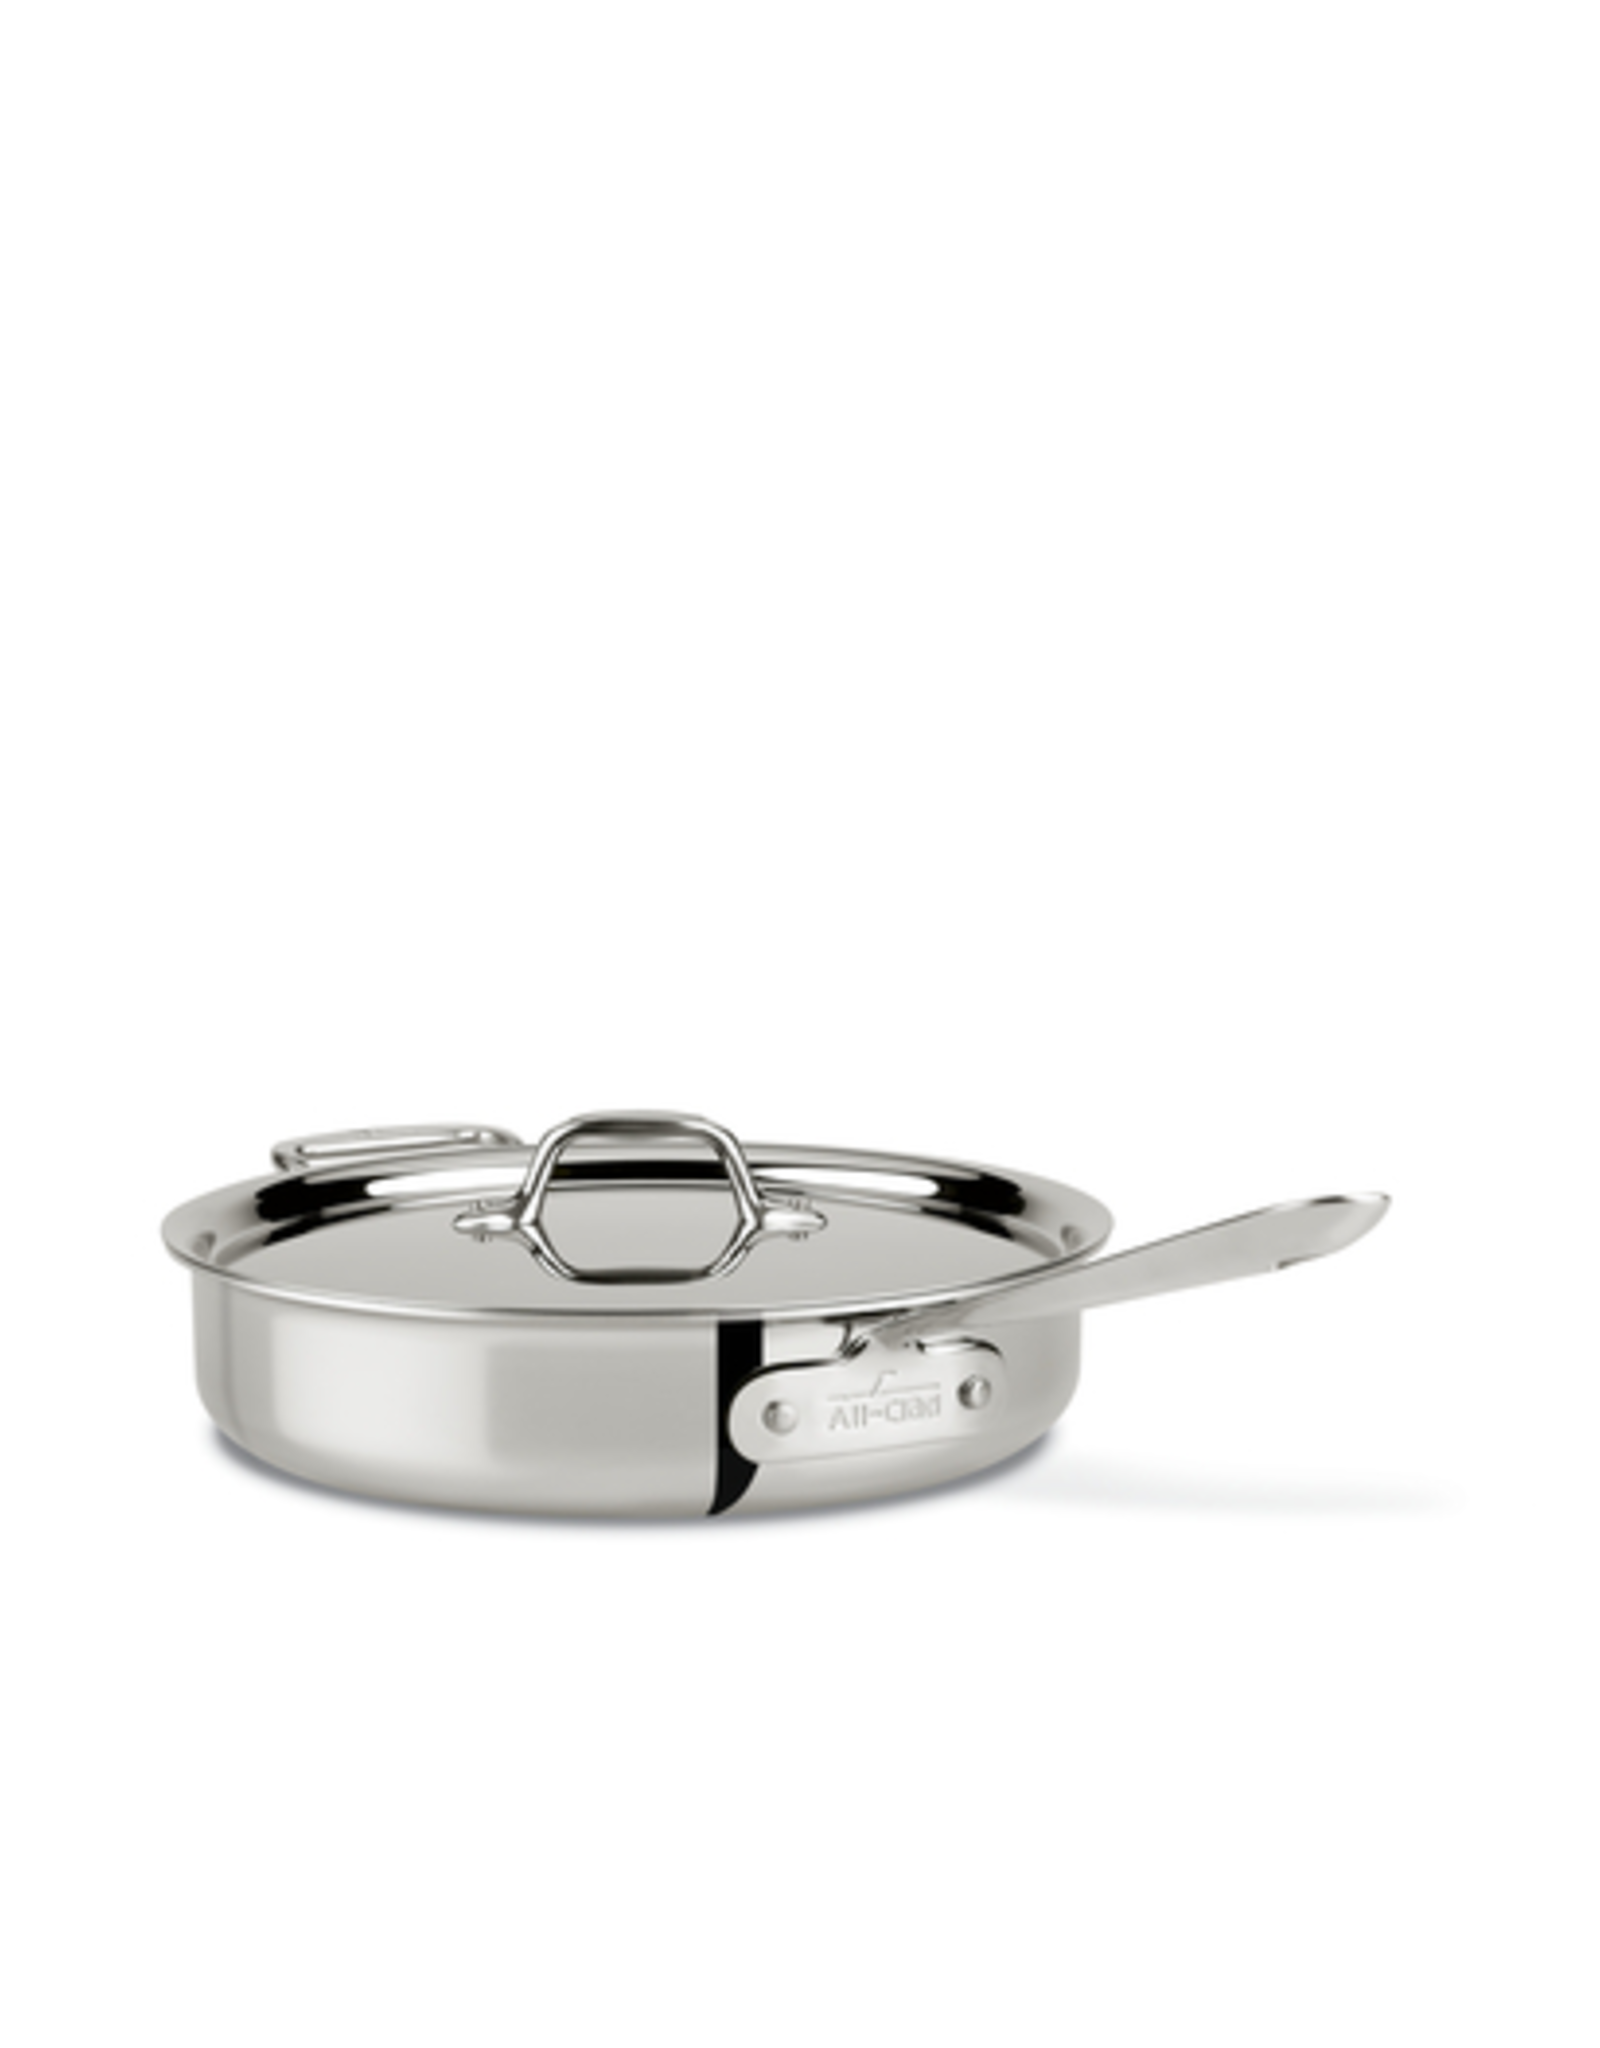 All-Clad AC D3 Stainless 3 Qt. Saute Pan w/ Lid